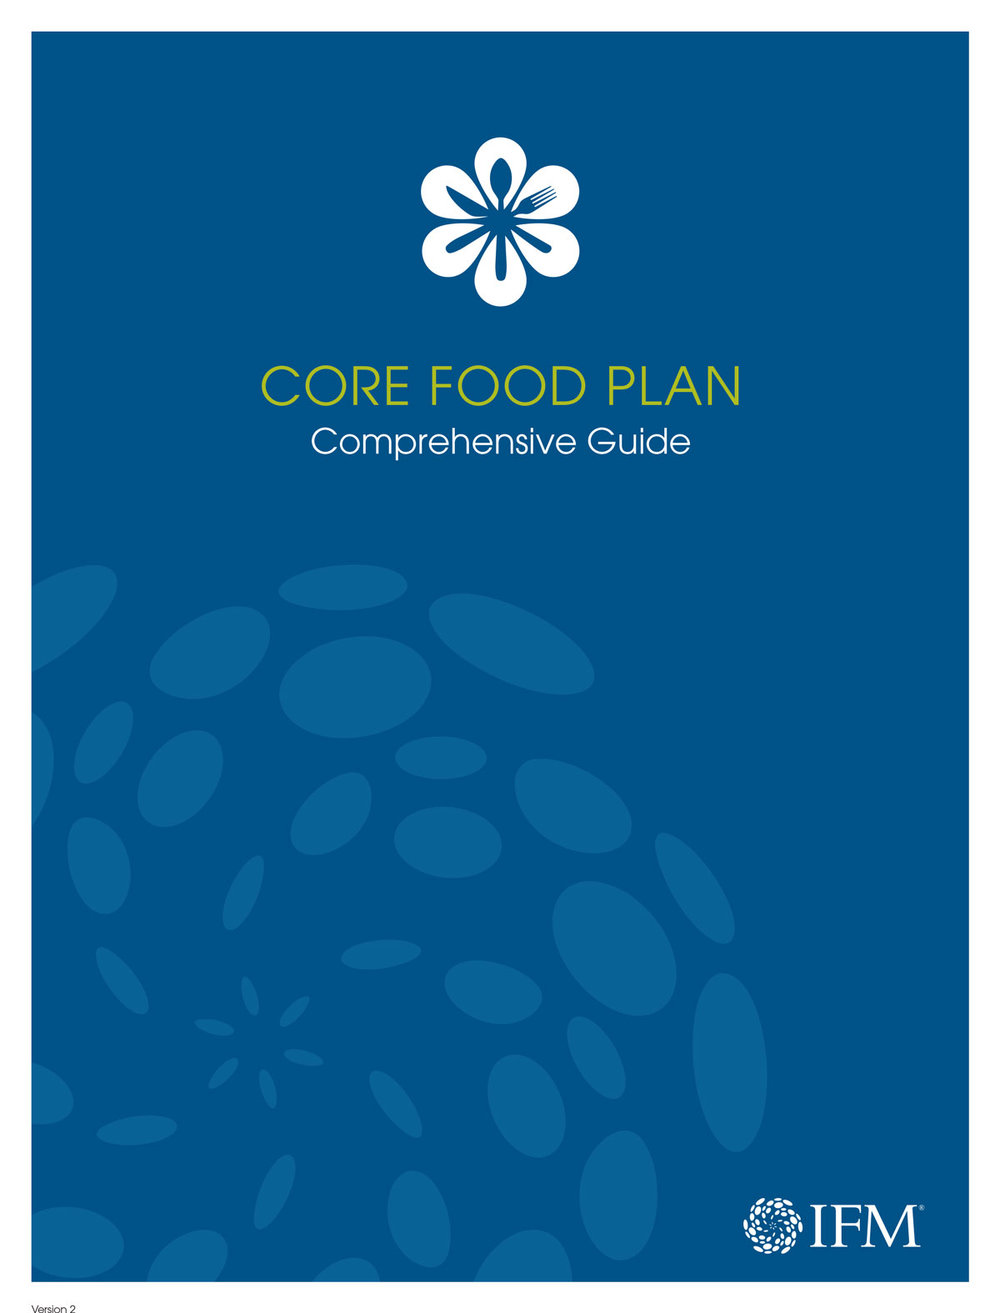 Core_Food_Plan_Comprehensive_Guide_Image.jpg